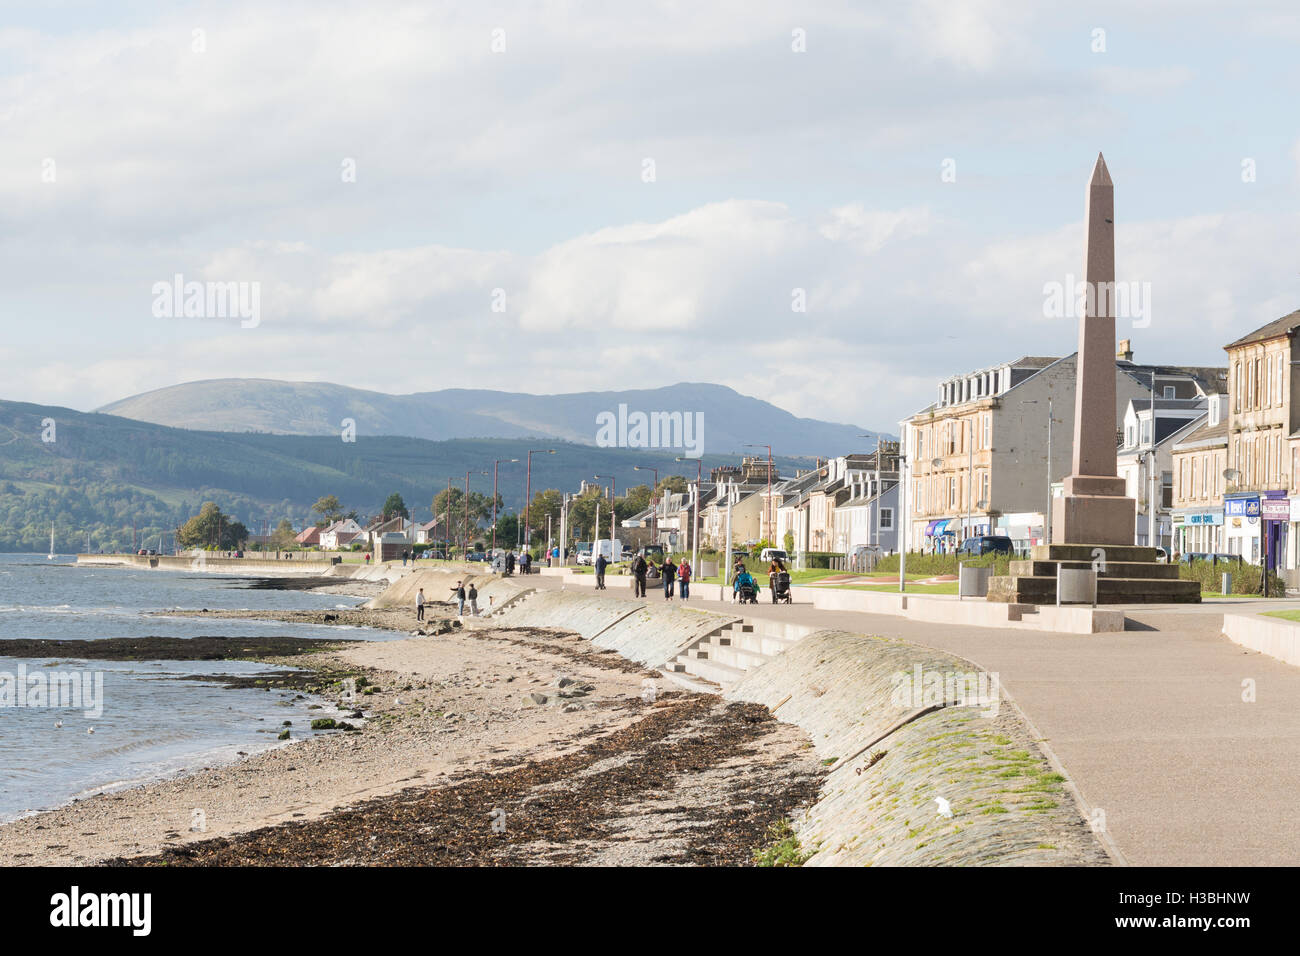 Helensburgh sea front, Clyde Estuary, Argyll, Scotland, UK - home to Henry Bell, who built Europe's first commercial - Stock Image